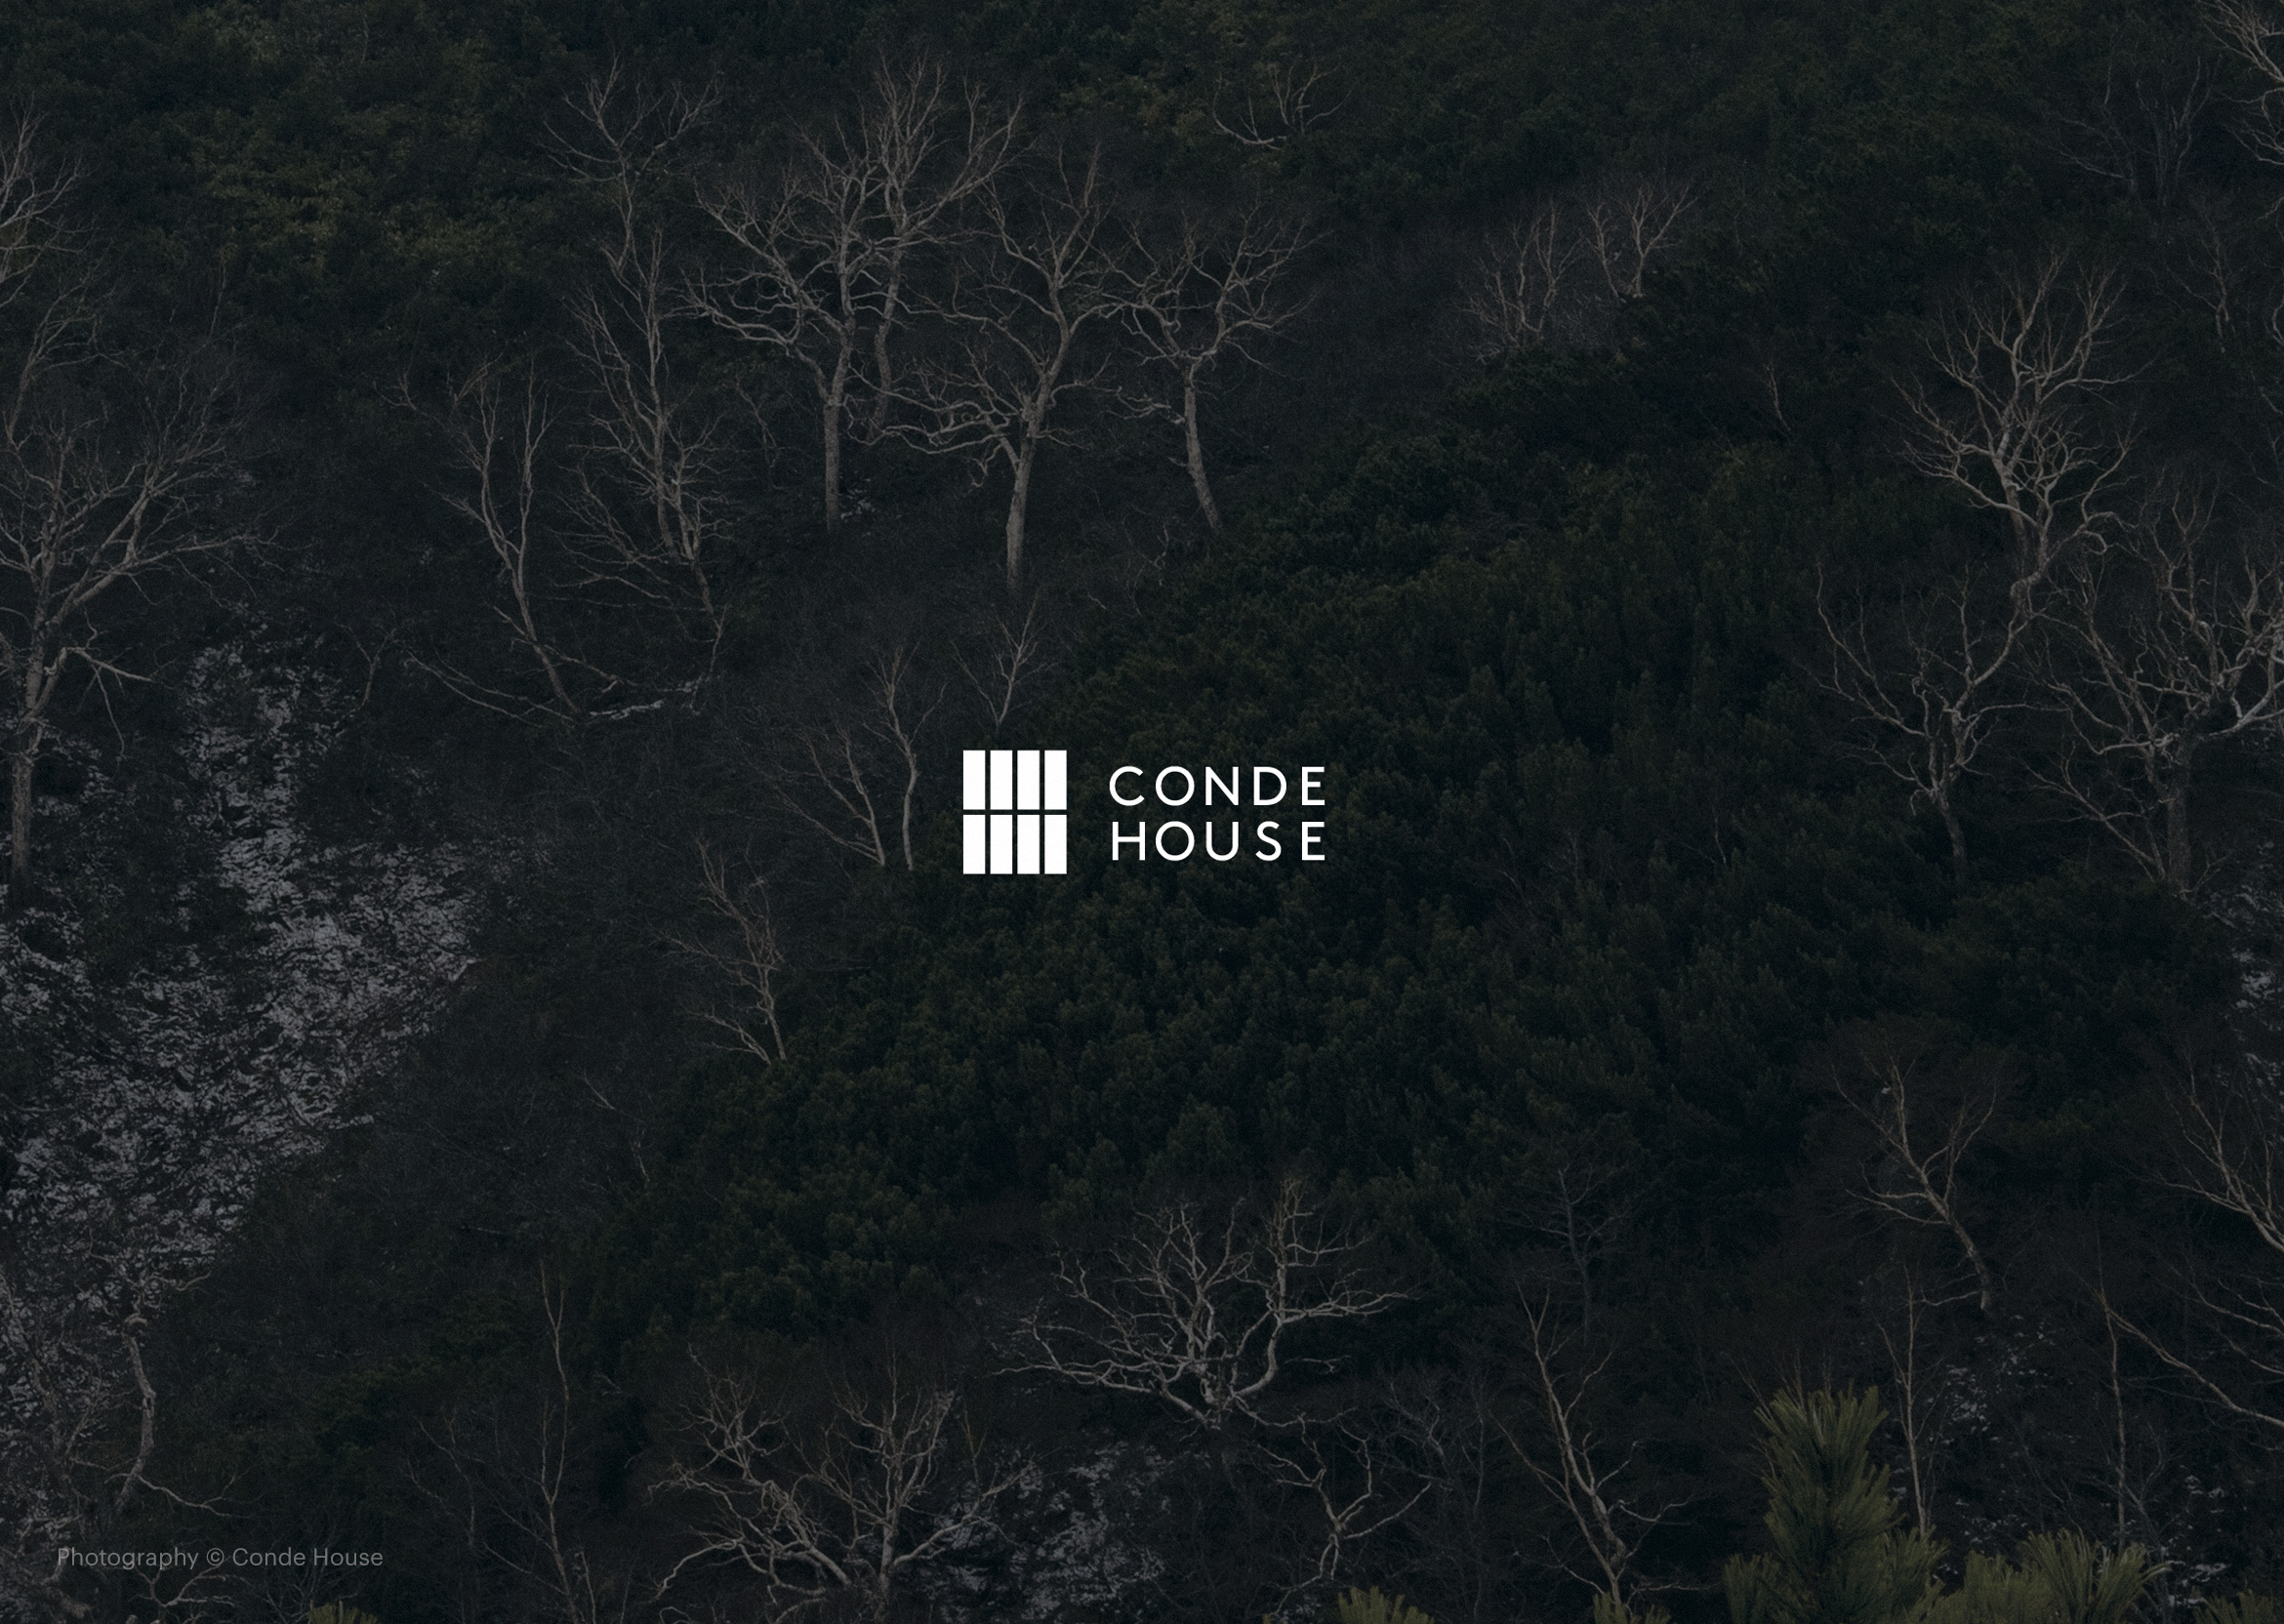 condehouse